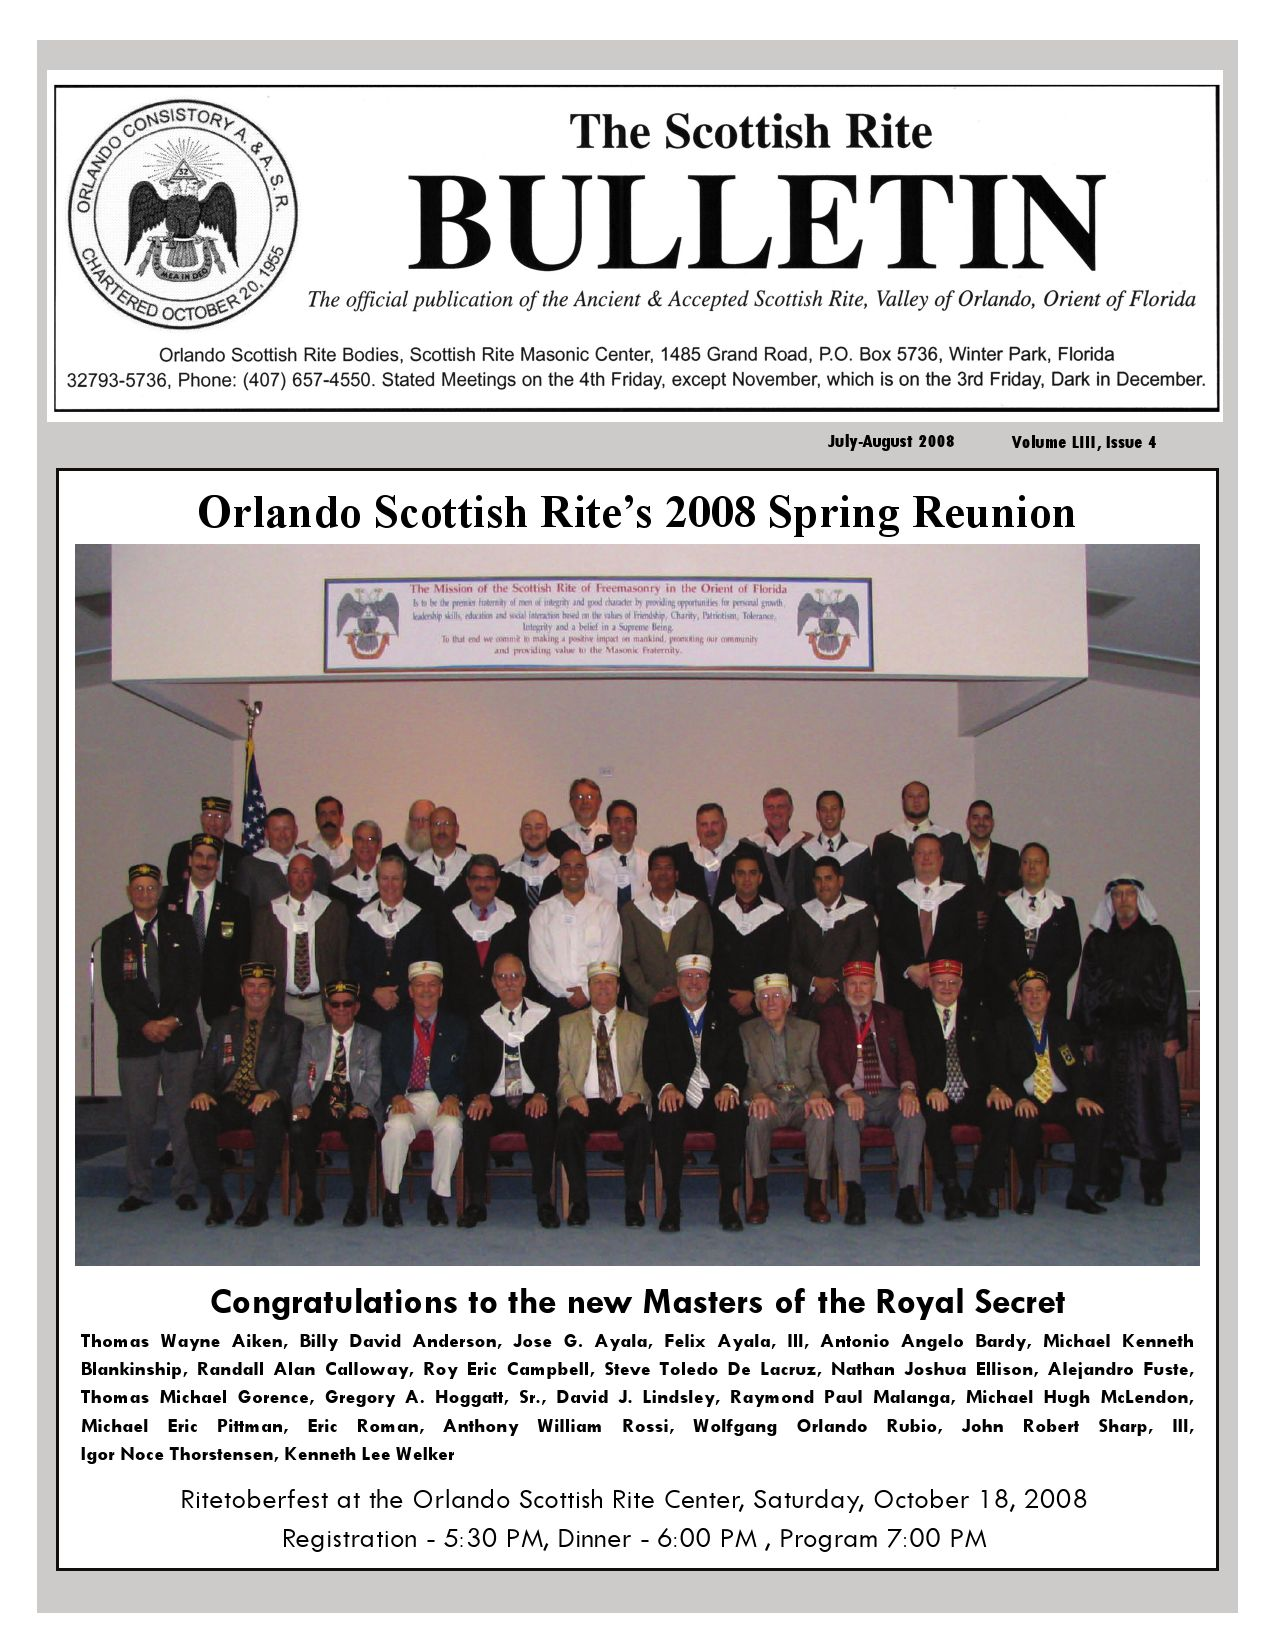 Orlando Scottish Rite Bulletin July-August 2008